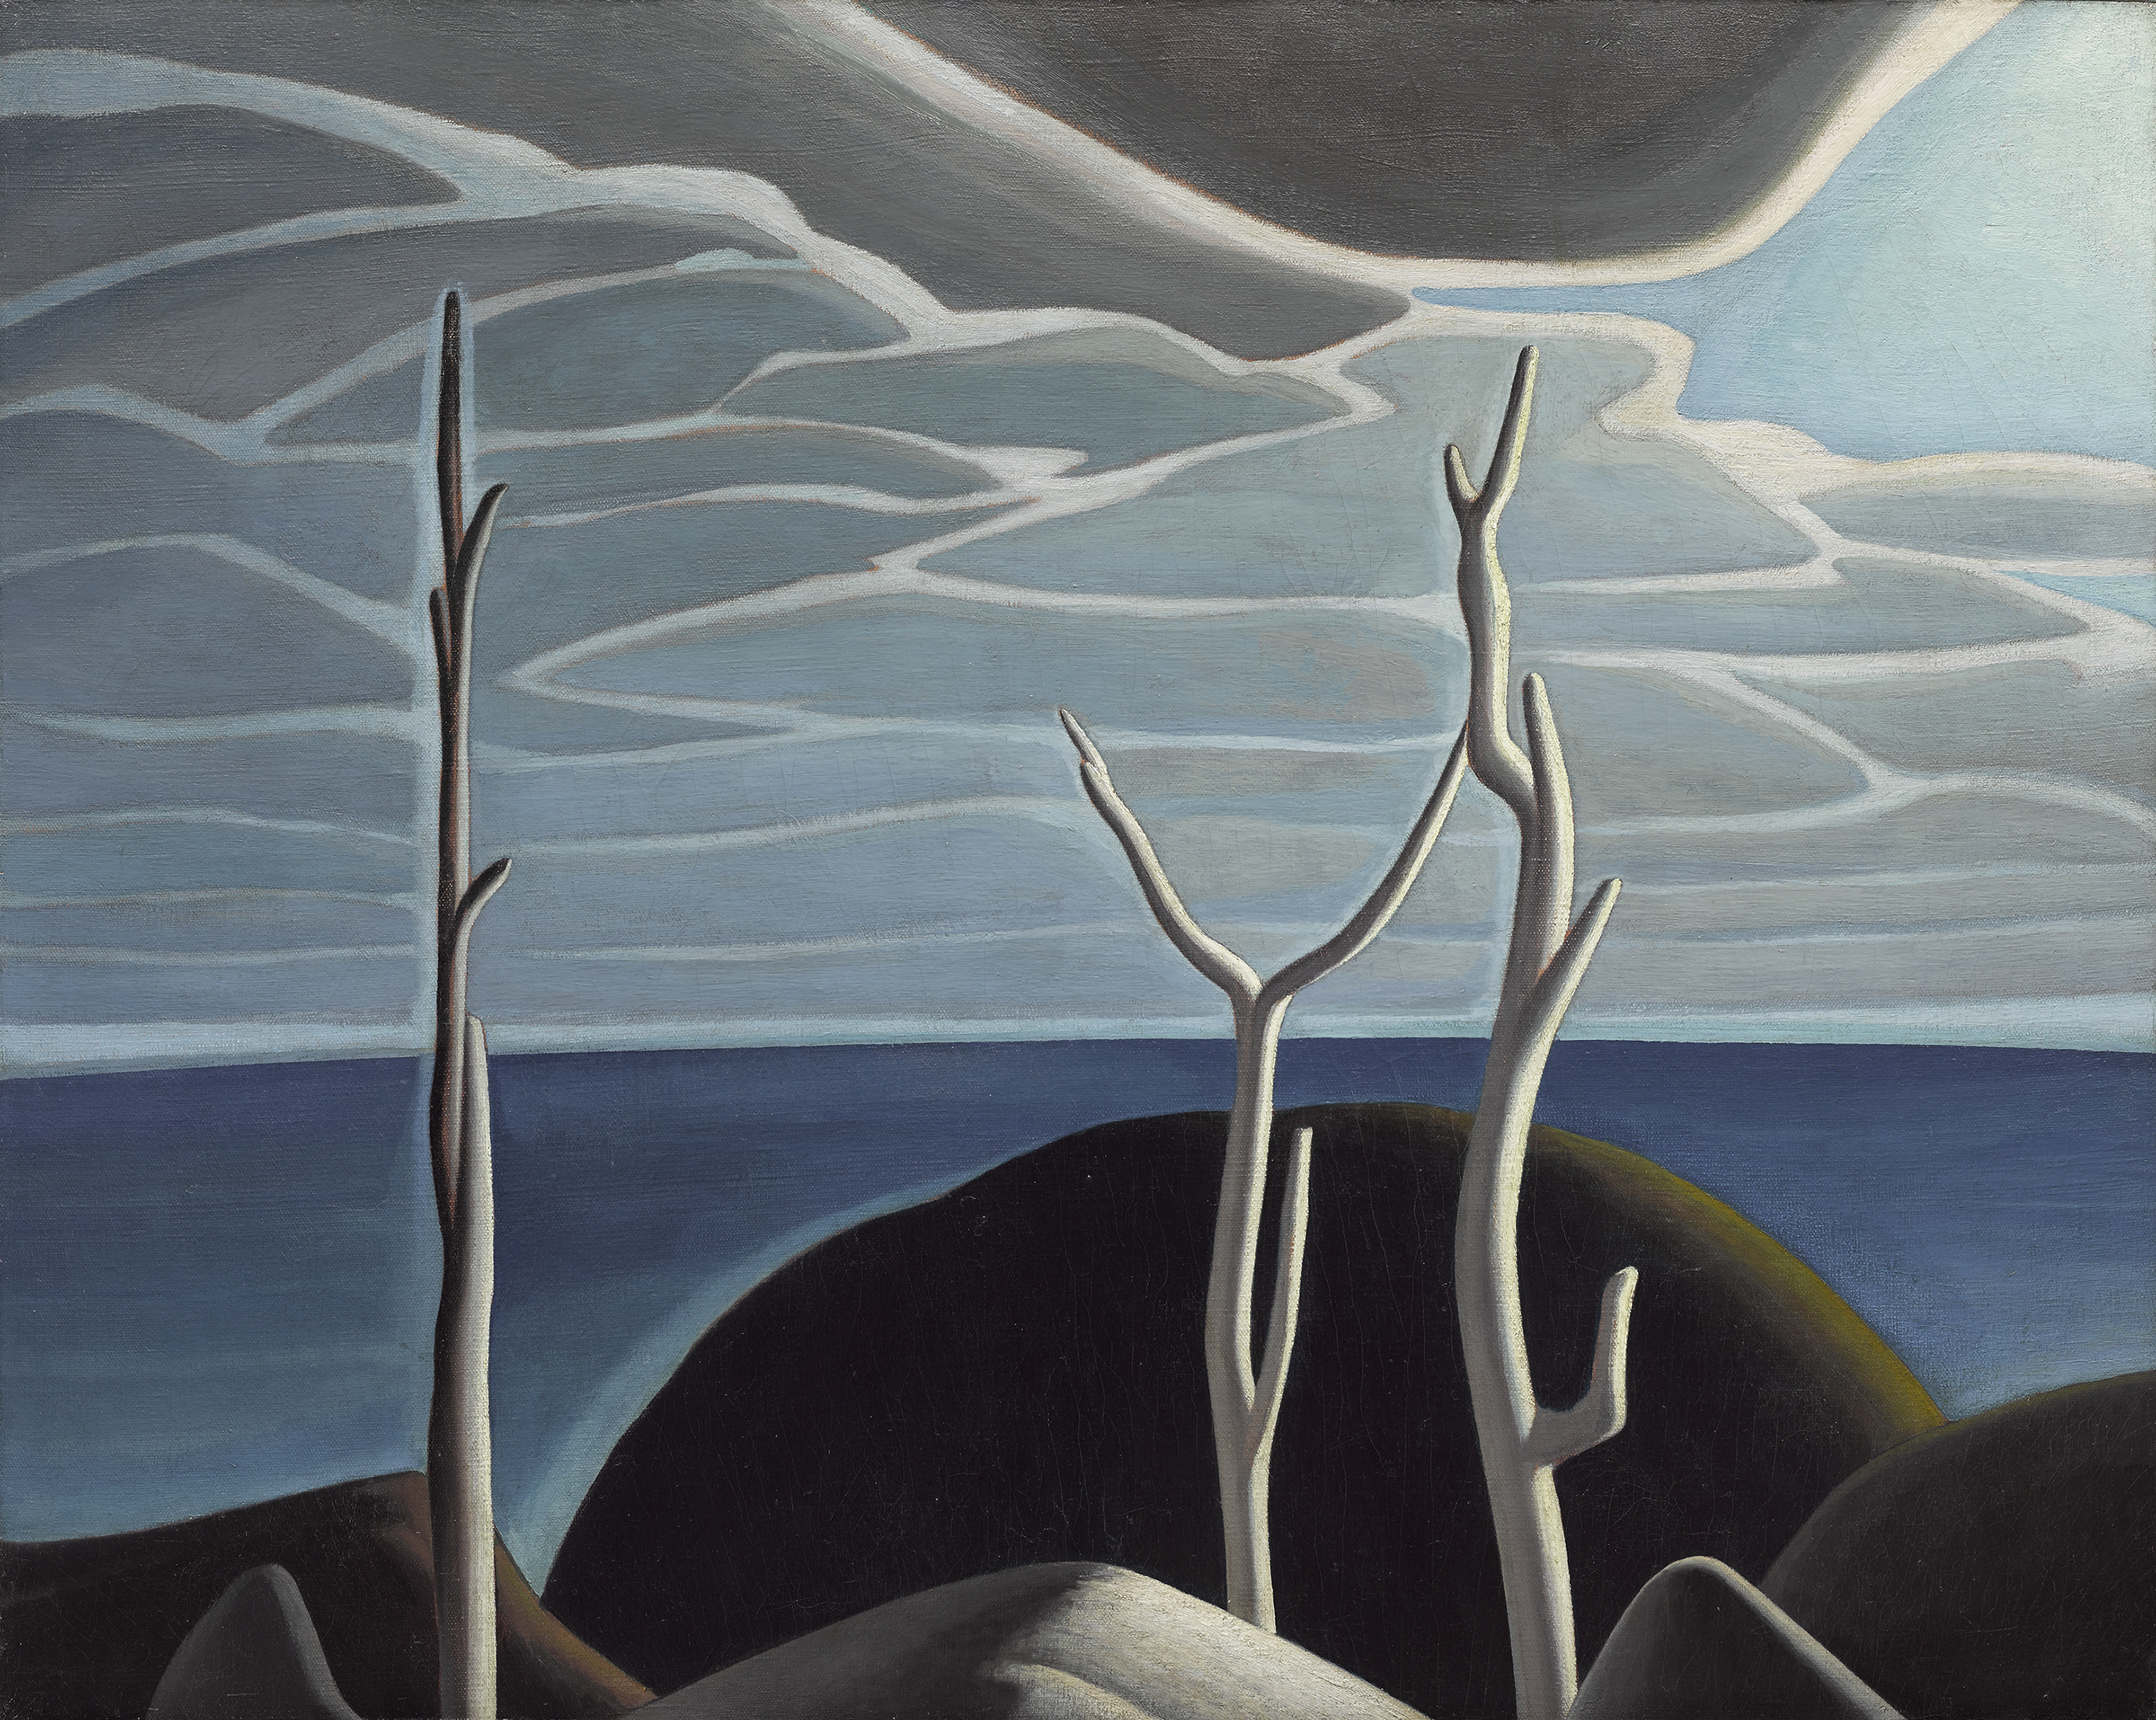 In the foreground of this painting, three dead trees stand erect in front of brownish rocky masses. Beyond, the horizon line separates the blue sky layered in white and grey clouds from the smooth surface of the darker blue lake.